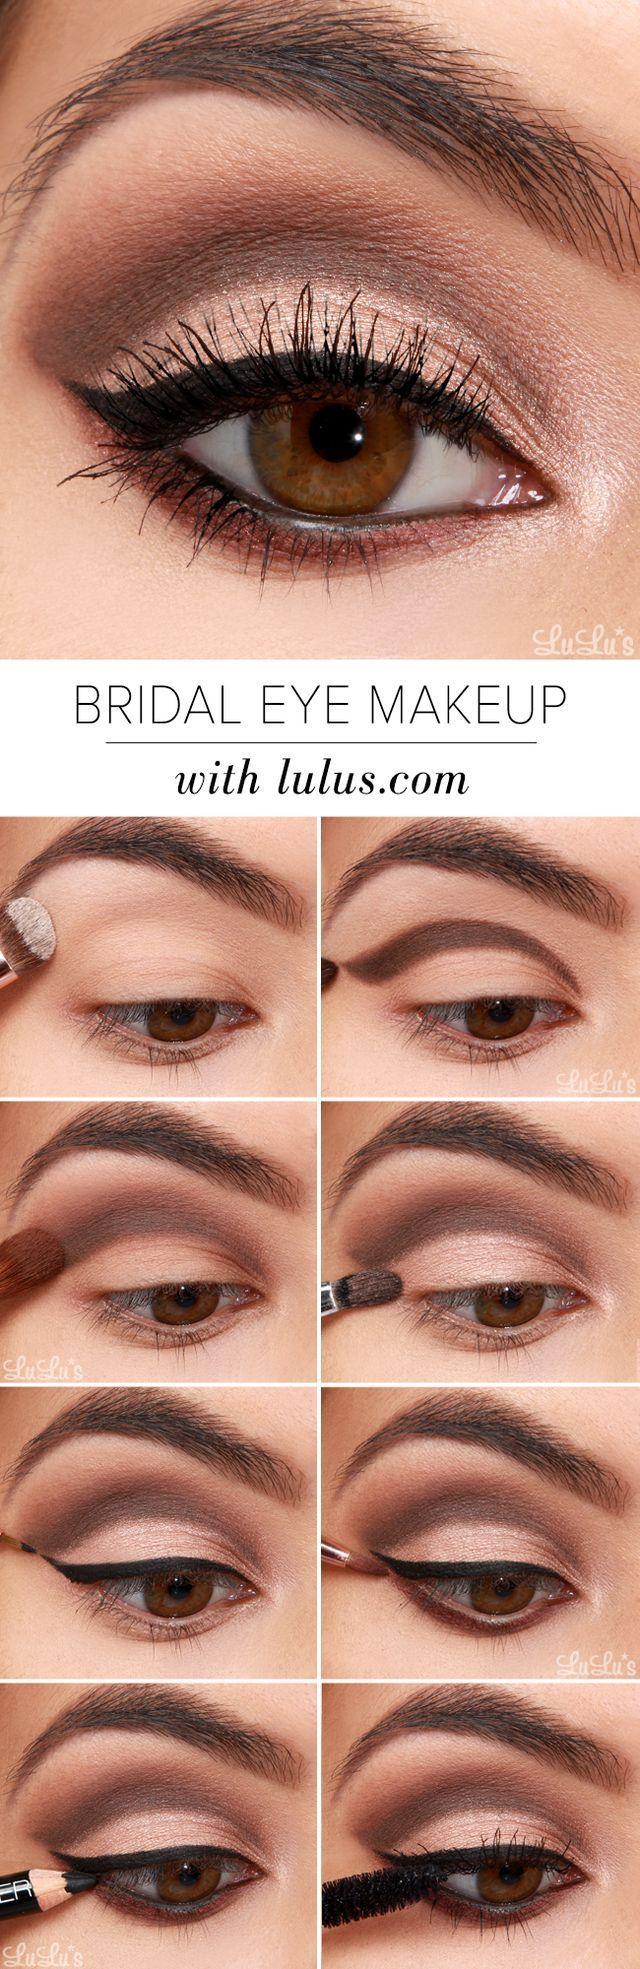 Whether you're a bride-to-be, or simply a lover of glamorous makeup looks...